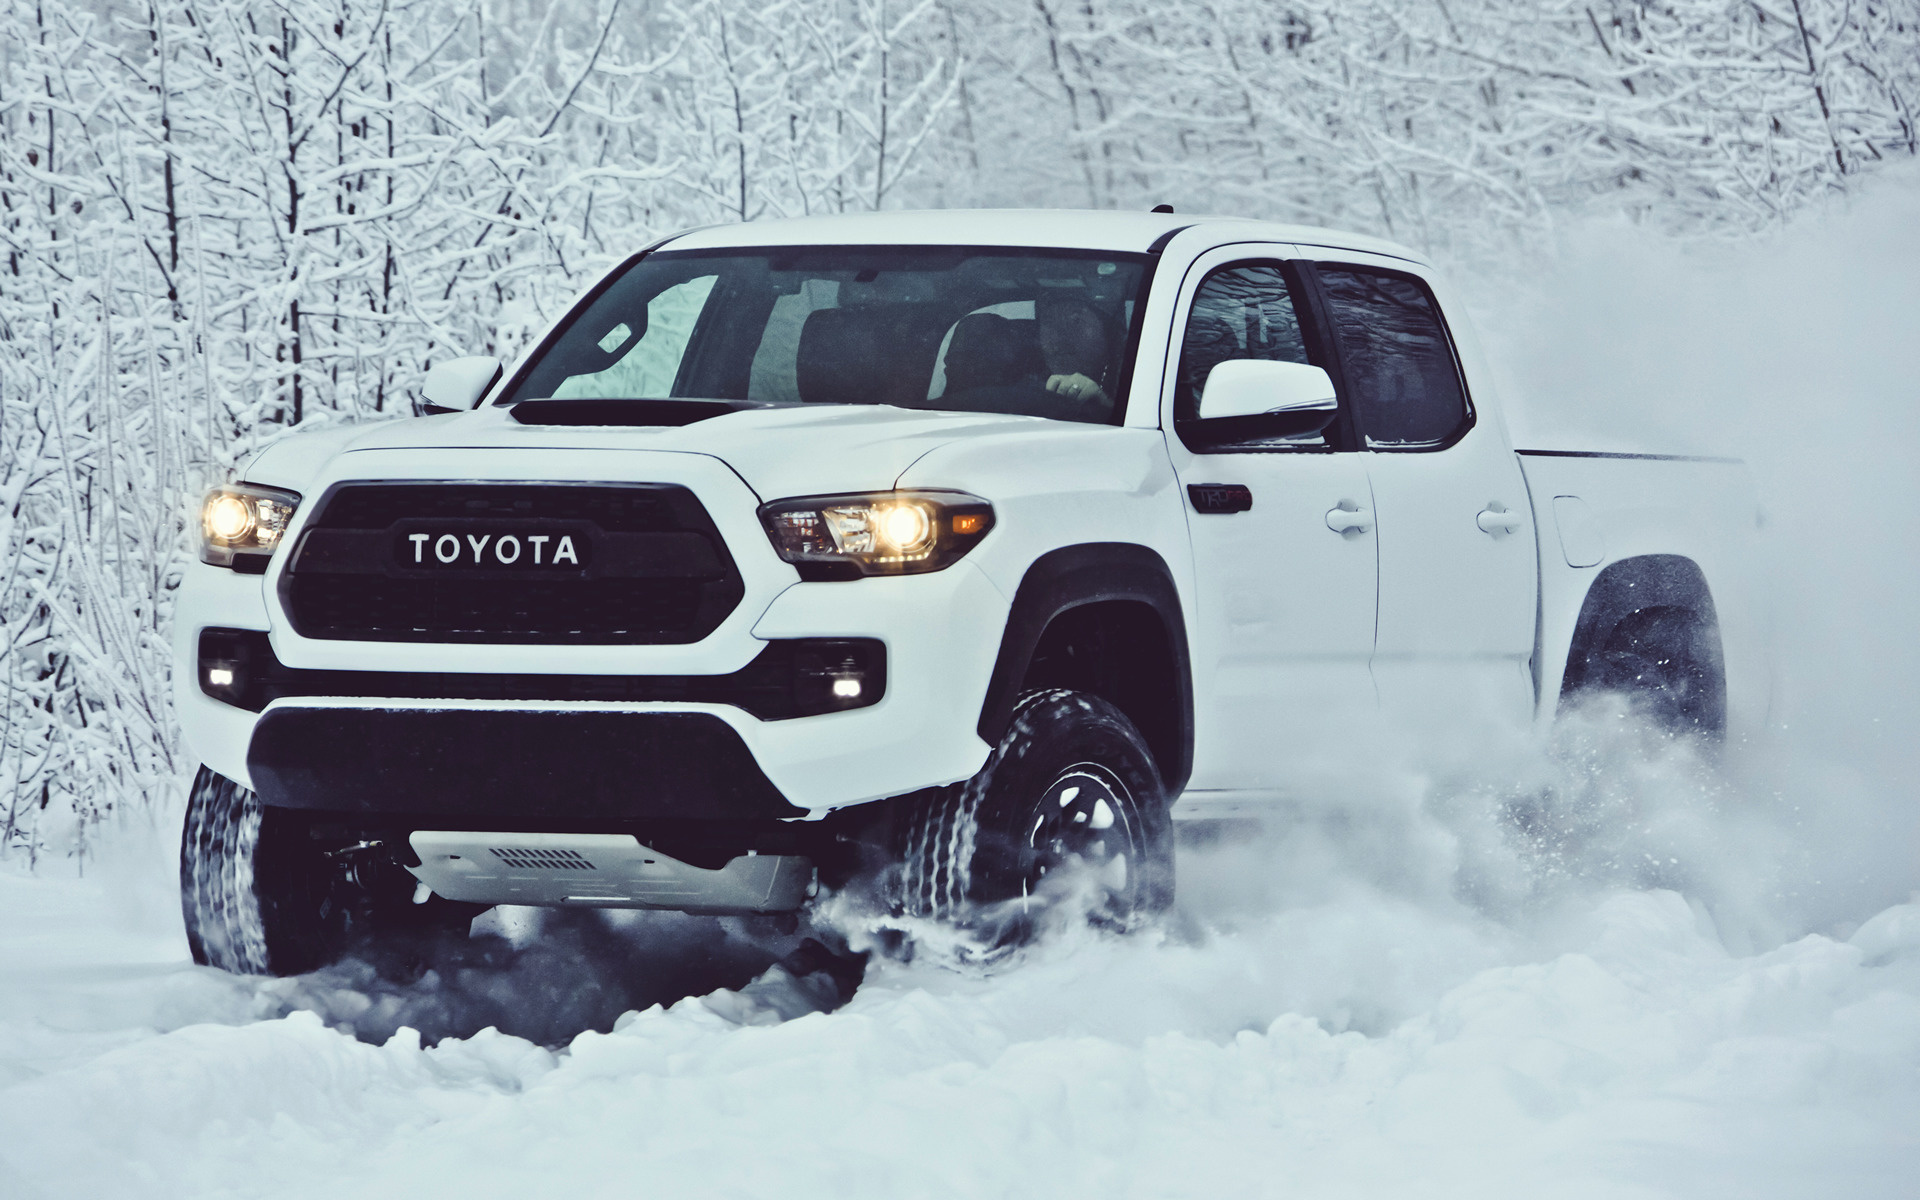 2014 4runner For Sale >> Toyota Tacoma TRD Pro Double Cab (2017) Wallpapers and HD Images - Car Pixel